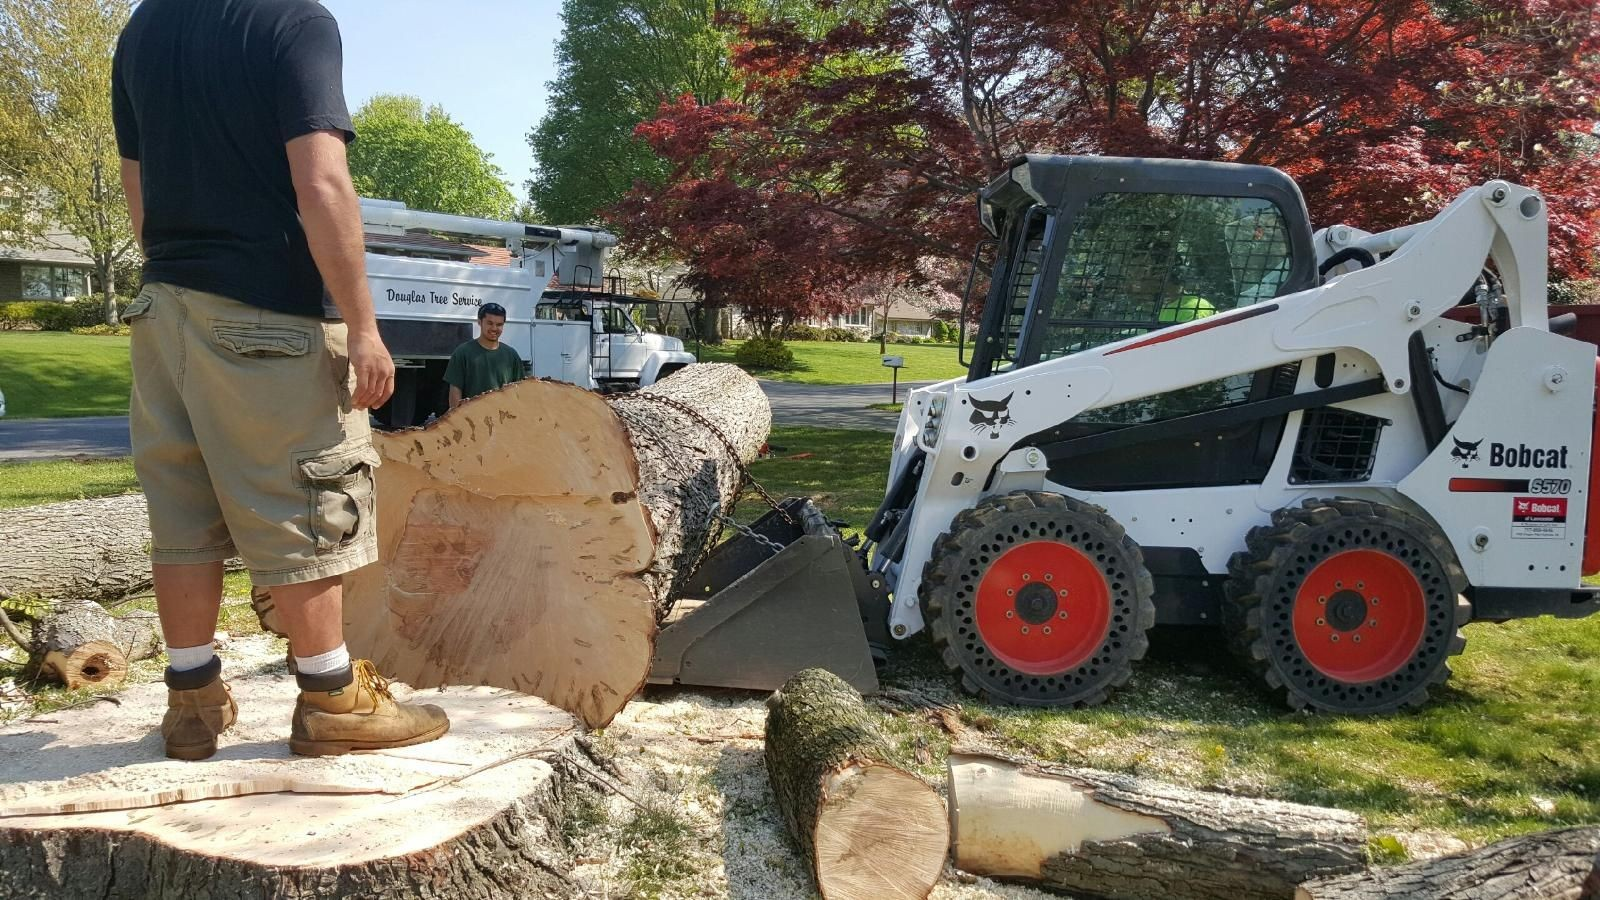 Washburn-Amarillo Tree Trimming and Stump Grinding Services-We Offer Tree Trimming Services, Tree Removal, Tree Pruning, Tree Cutting, Residential and Commercial Tree Trimming Services, Storm Damage, Emergency Tree Removal, Land Clearing, Tree Companies, Tree Care Service, Stump Grinding, and we're the Best Tree Trimming Company Near You Guaranteed!